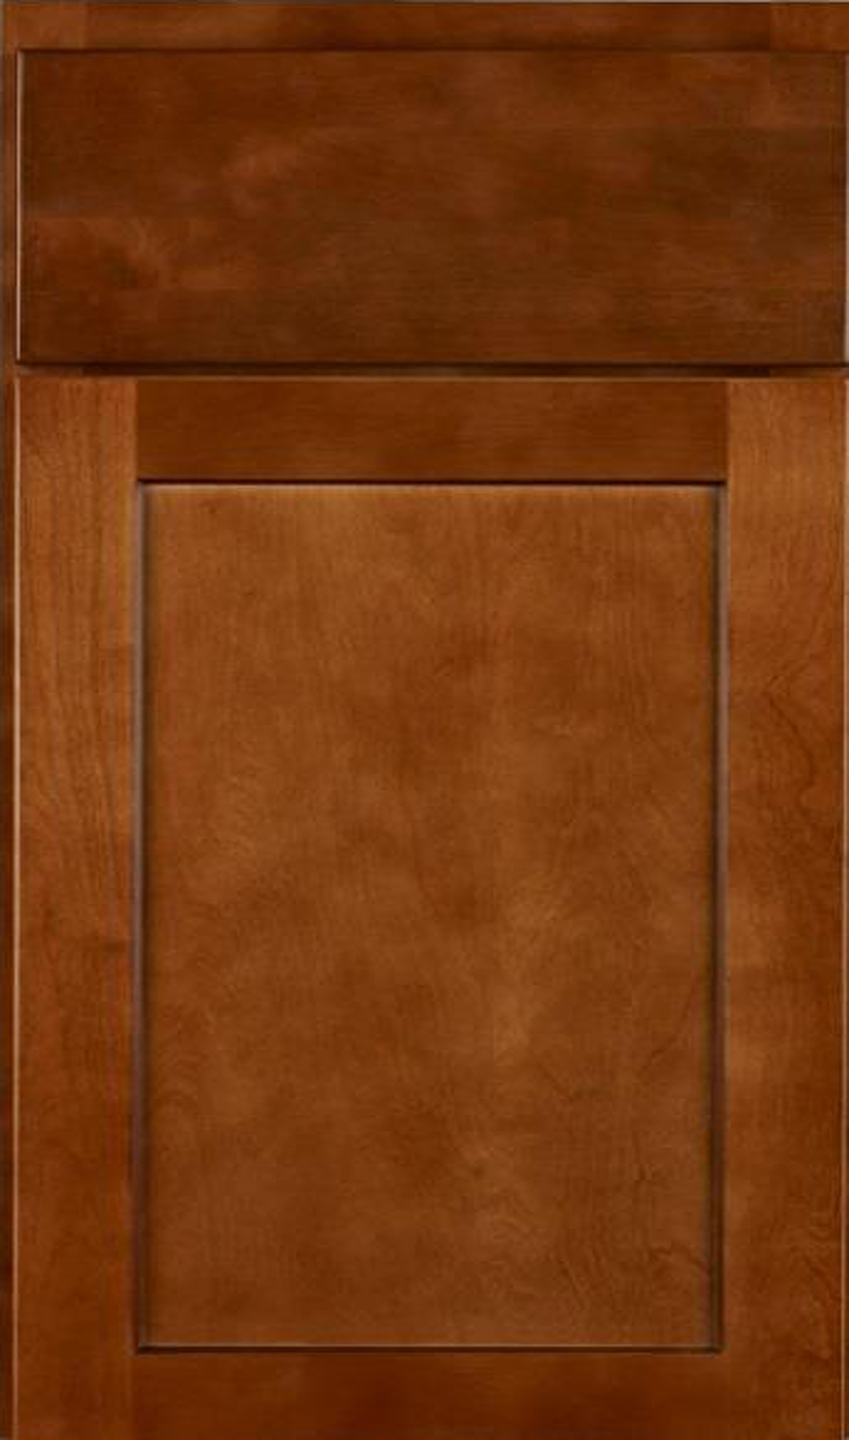 amesbury brown kitchen cabinets Frameless Shaker Kitchen Cabinets High Gloss Cabinets Modern Kitchen